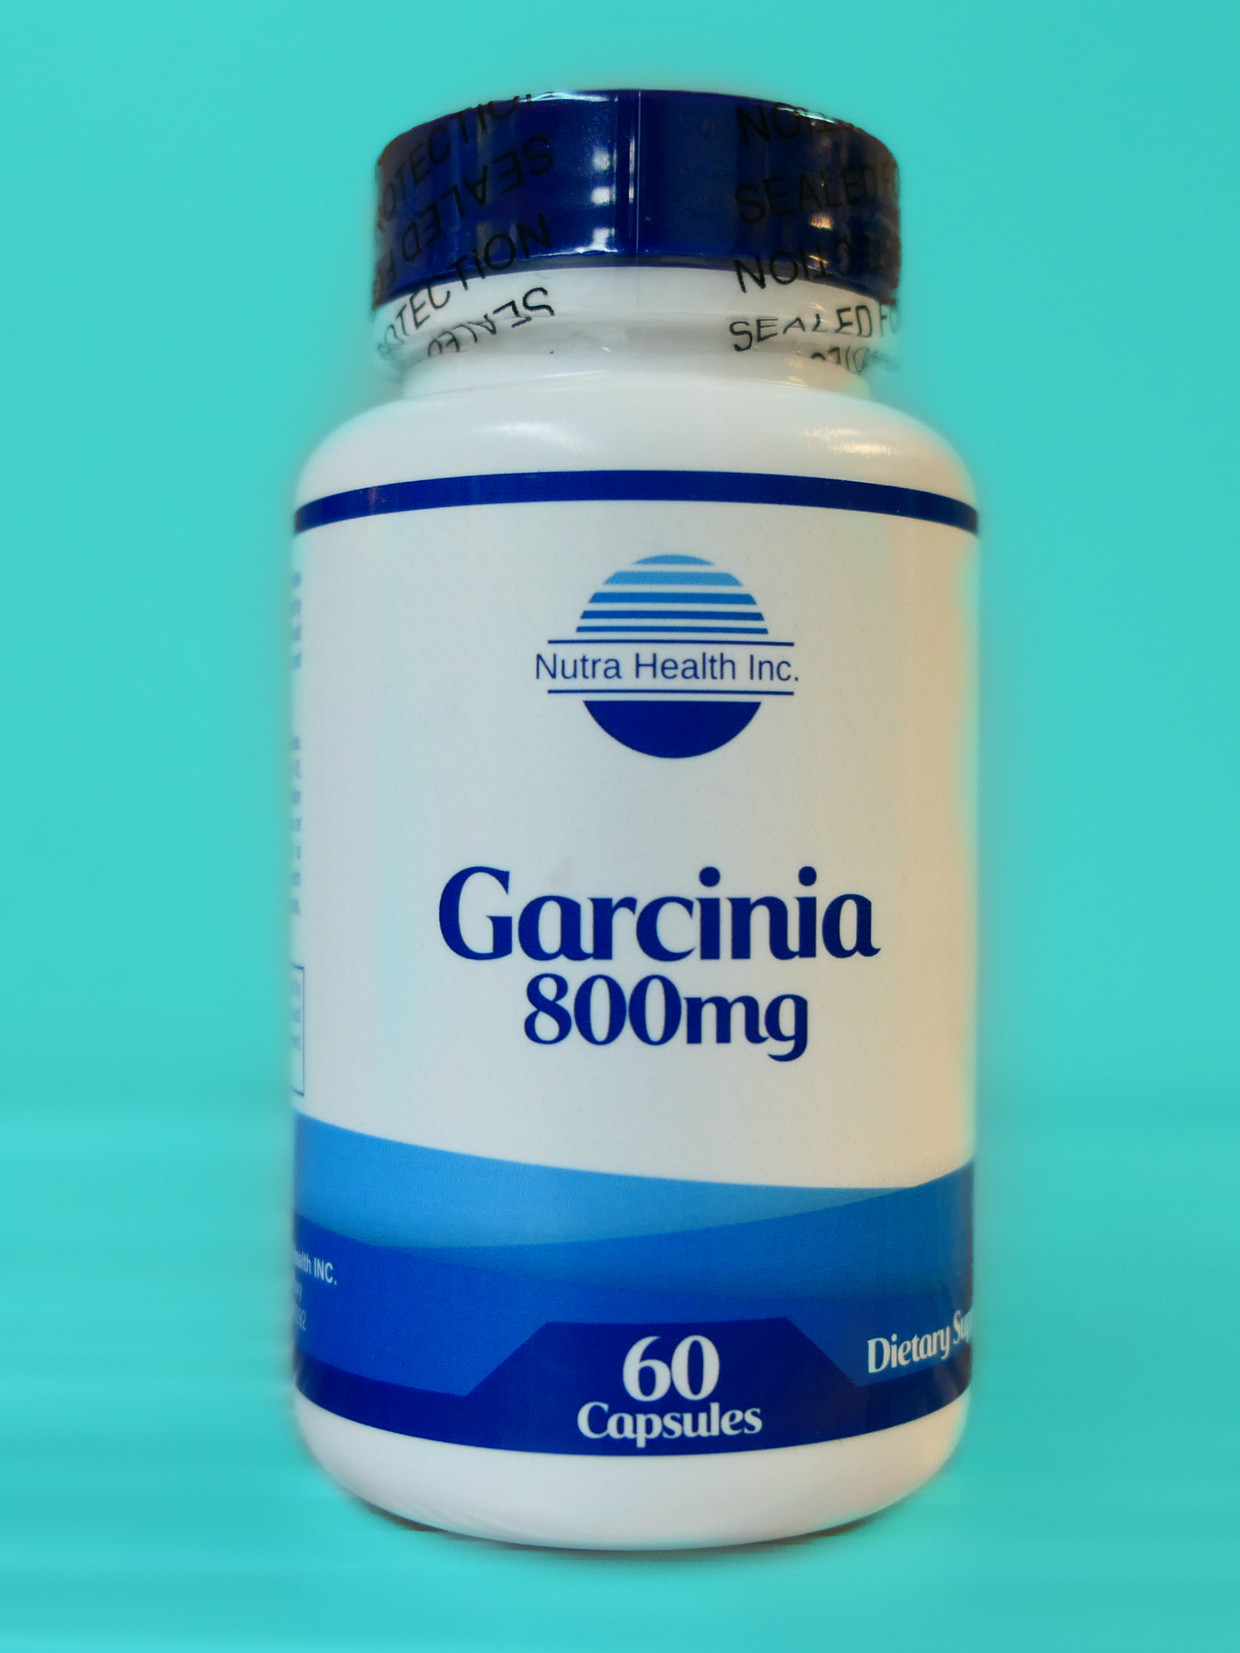 Garcinia 800mg:  Retail Price $29.00  For wholesale orders please call customer service at  678-697-2840 or email at info@dixiehealthandwellness.com